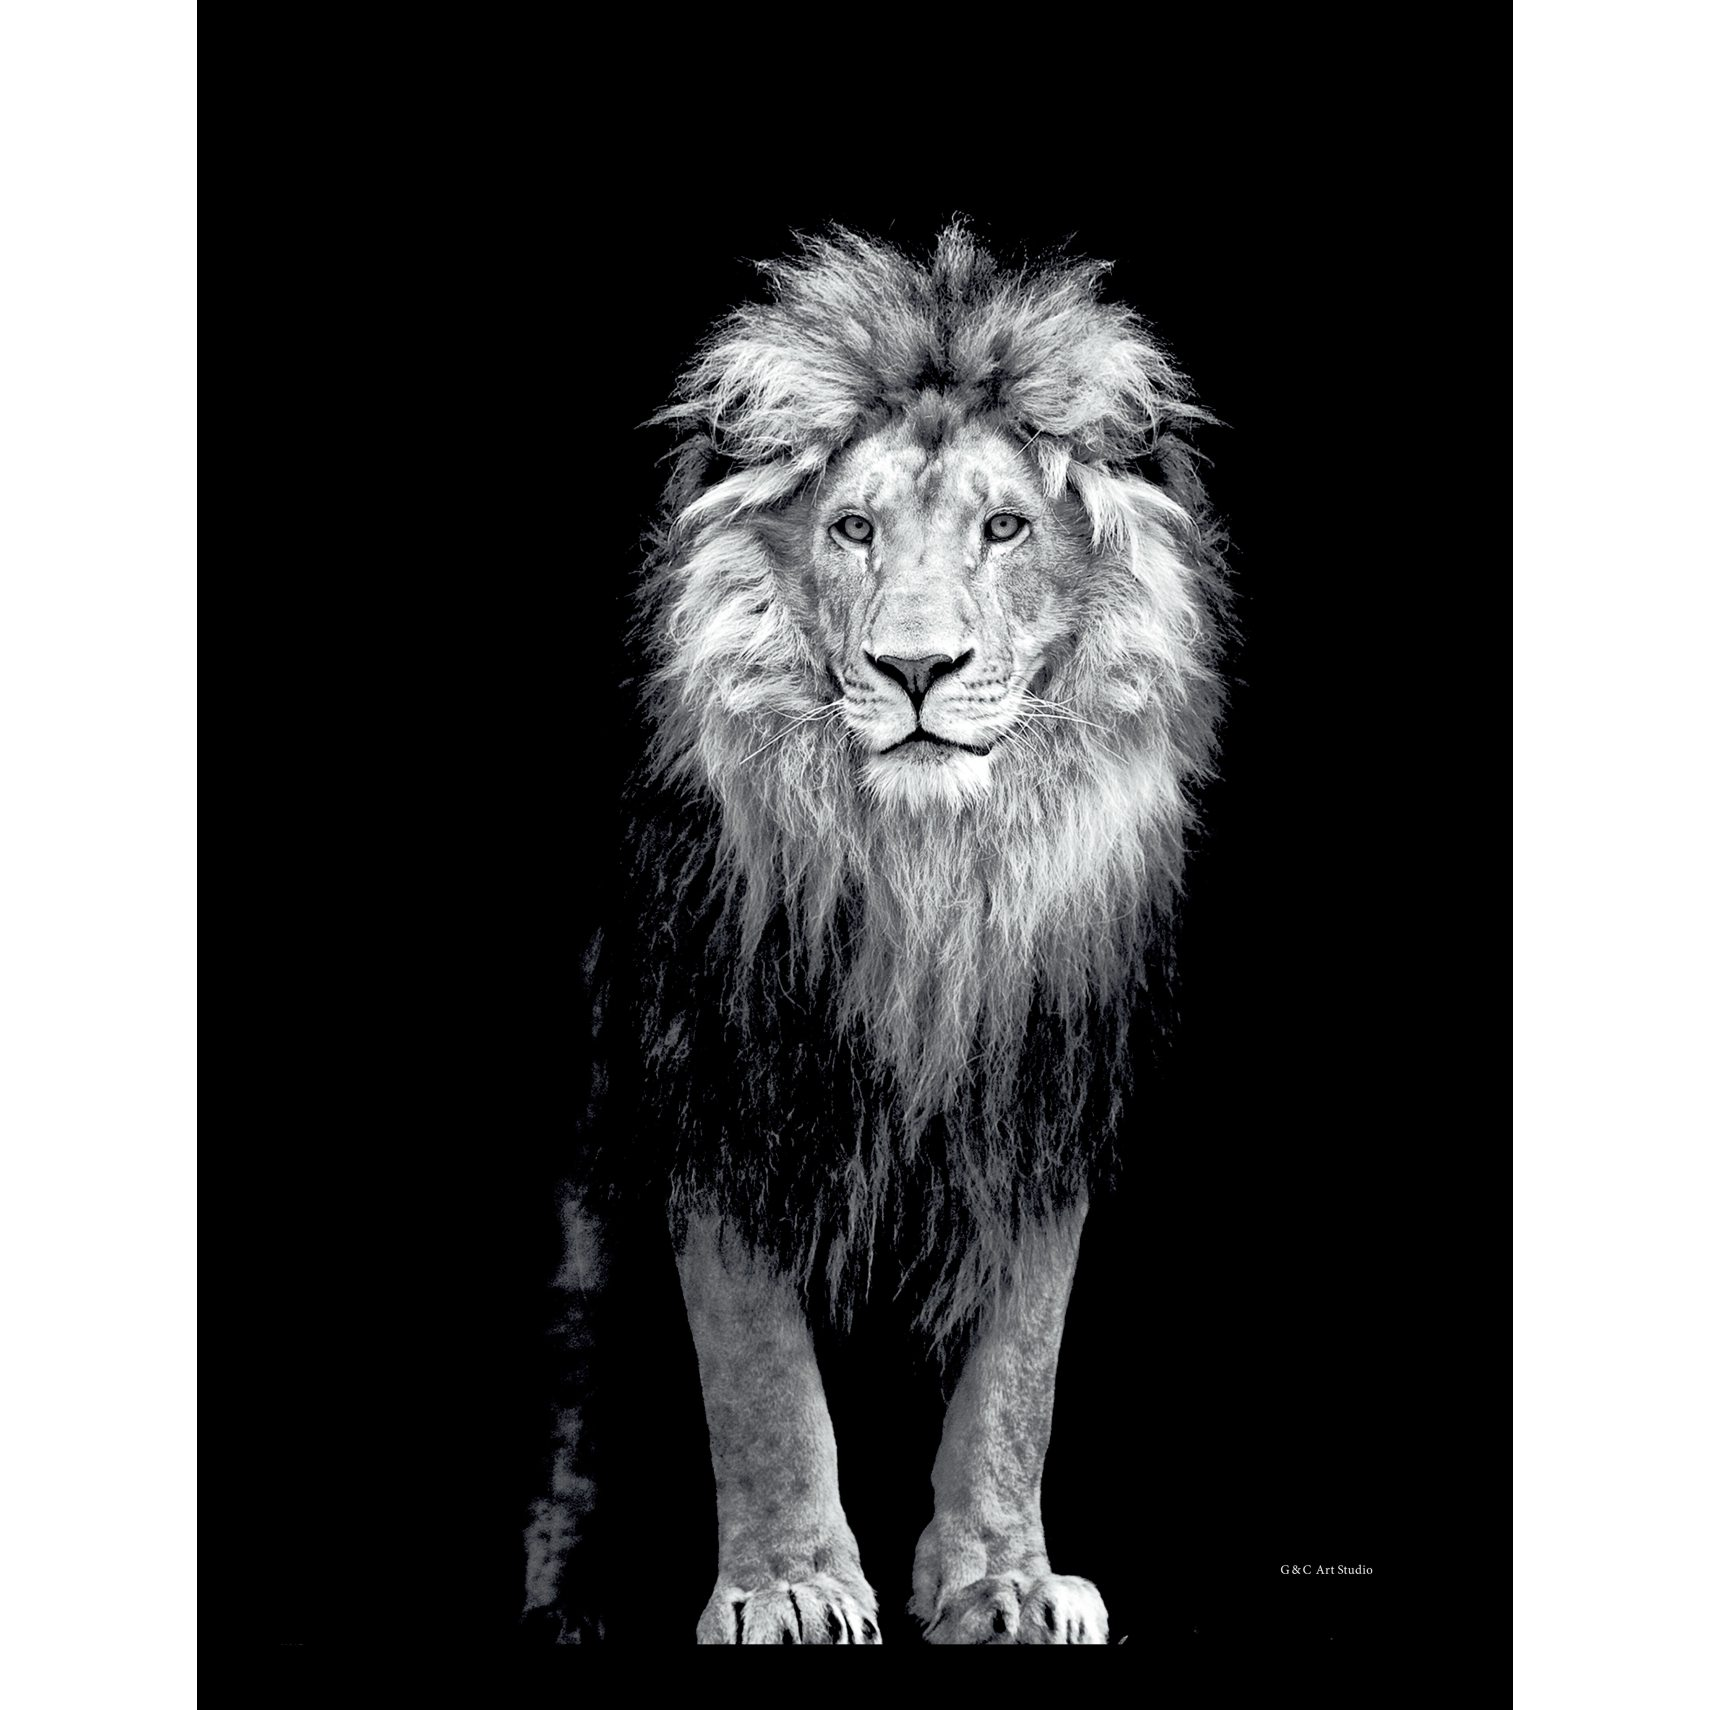 ART GALLERY Plakat 30 x 40 x 1,5 cm - Lion portrait og ramme i 15 mm sort fyrretræ